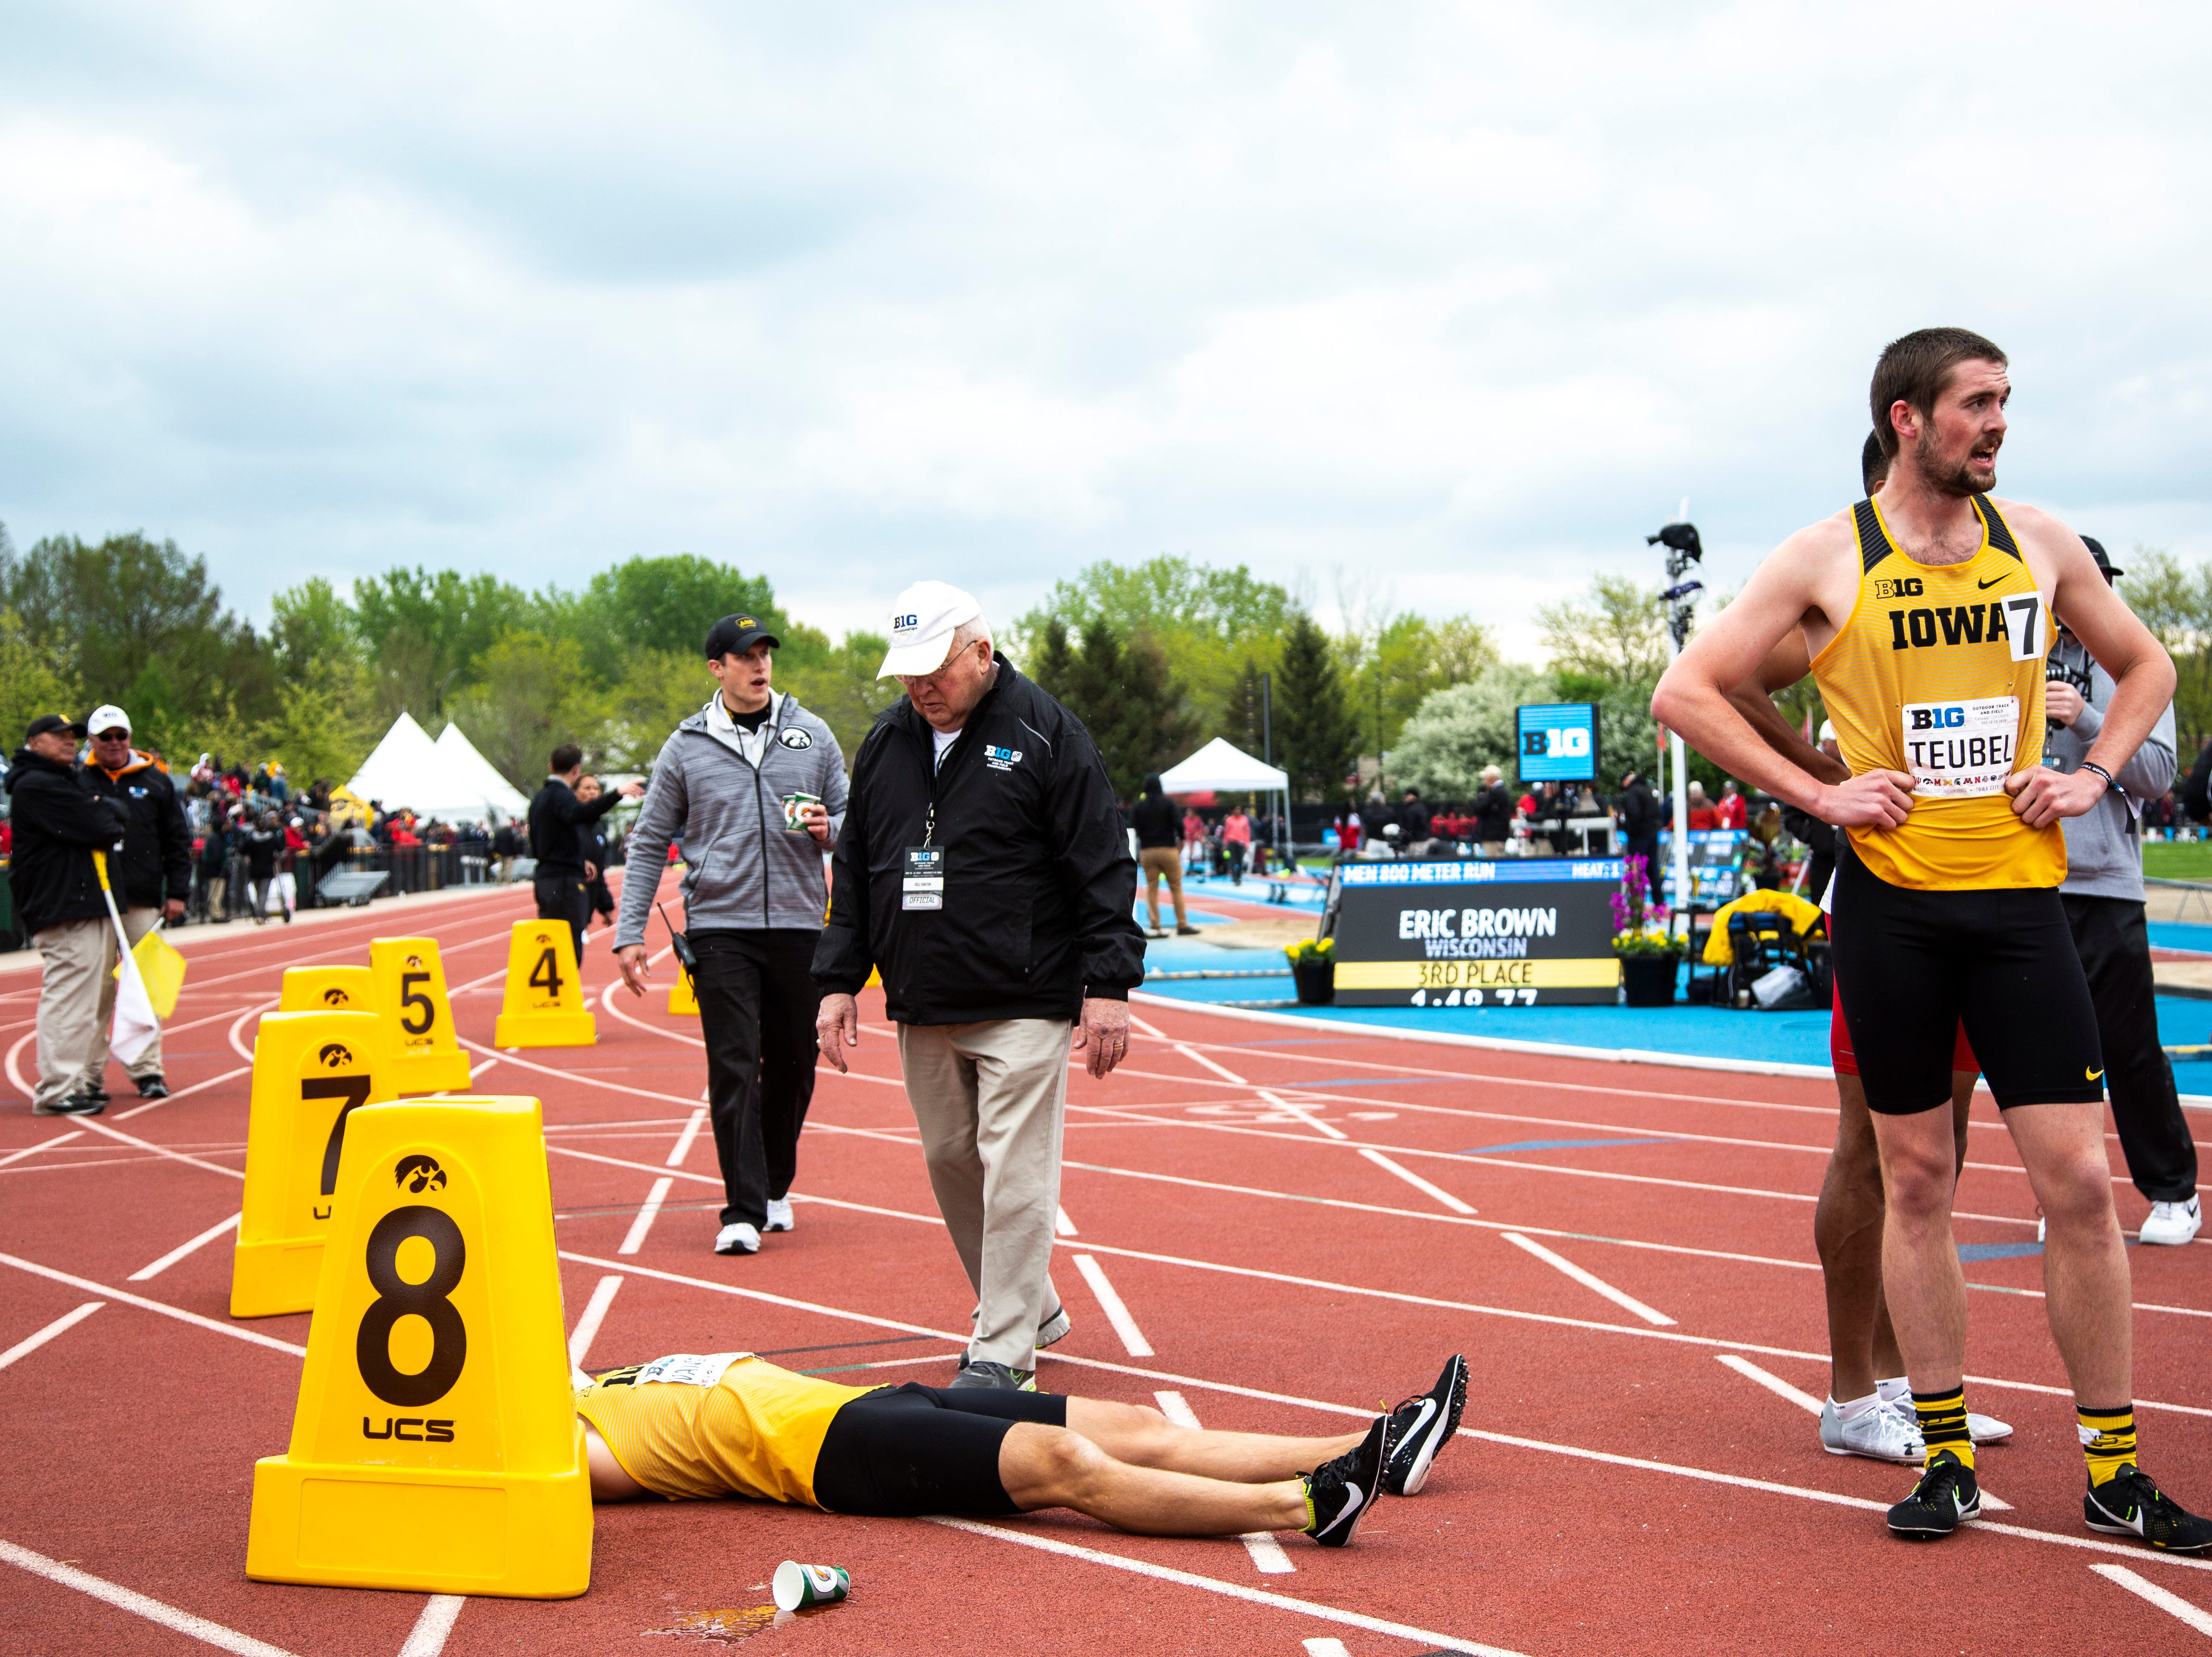 Iowa Nolan Teubel, right, stands next to teammate Tysen VanDraska while he tries to catch his breath after competing in the 800 meter final during the final day of Big Ten track and field outdoor championships, Sunday, May 12, 2019, at Francis X. Cretzmeyer Track on the University of Iowa campus in Iowa City, Iowa. VanDraska finished sixth, with a time of 1:49.58.